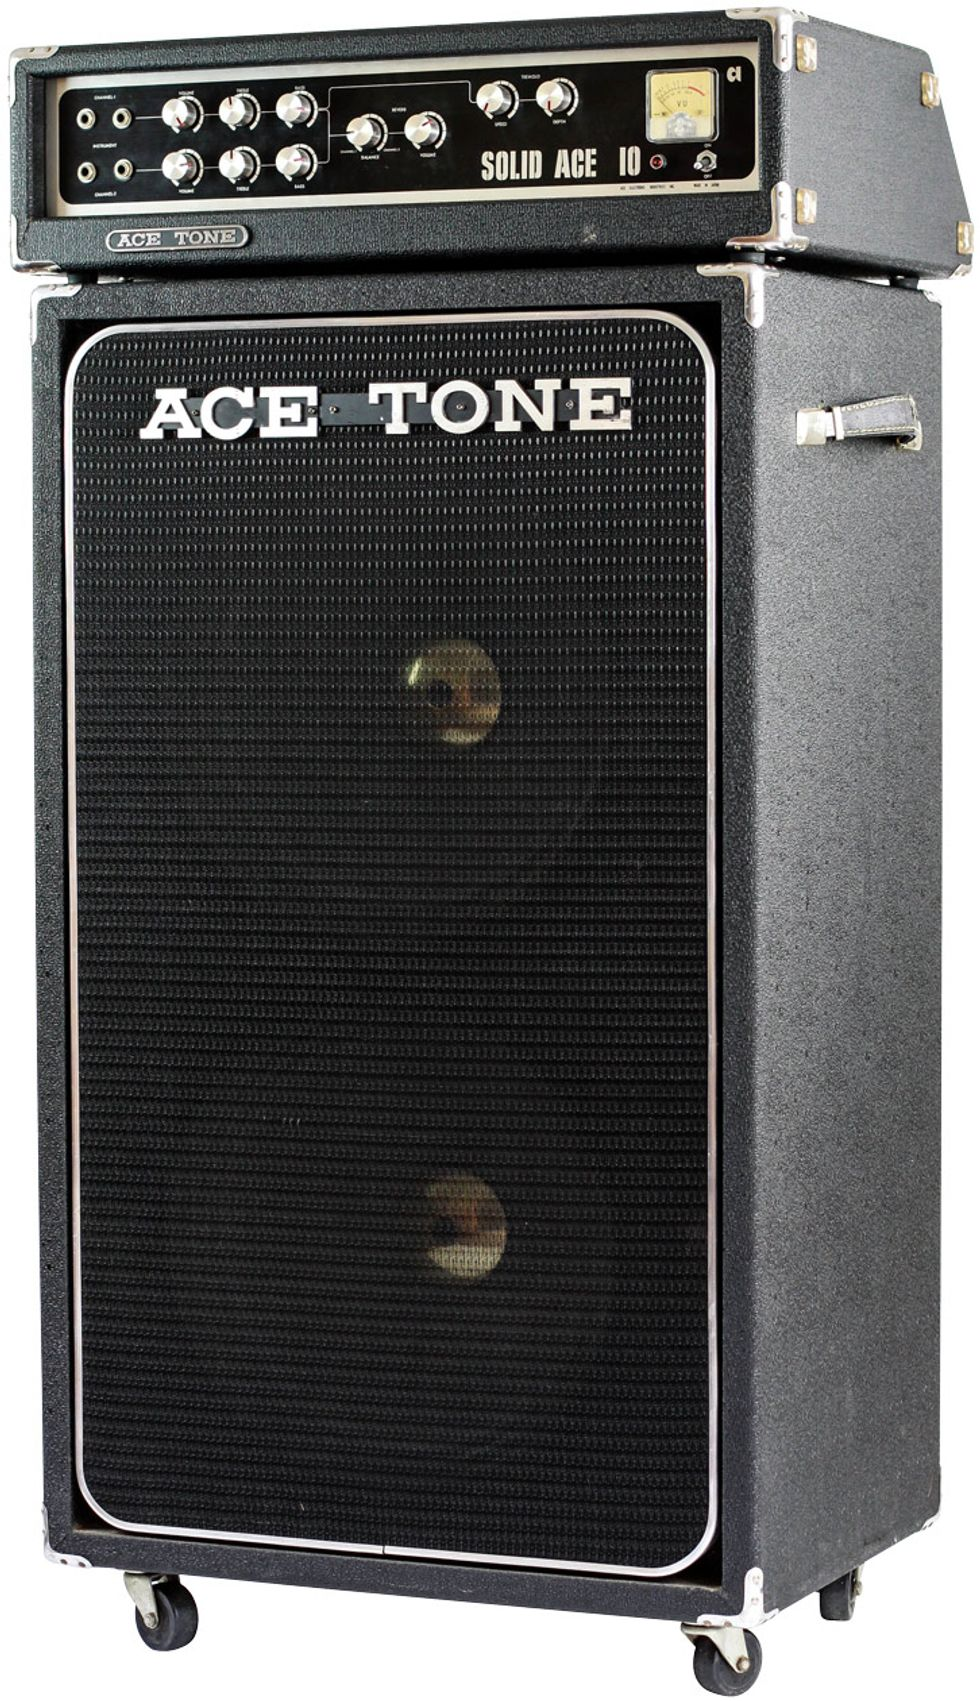 7 Vintage Sleeper Amps That Bring The Noise Premier Guitar Vu Meter For Power Amplifiers Flagship Amp With About 100 Watts On Tap And Came In Several Cabinet Configurationsall As Heavy They Sounded One Quirk A Built To